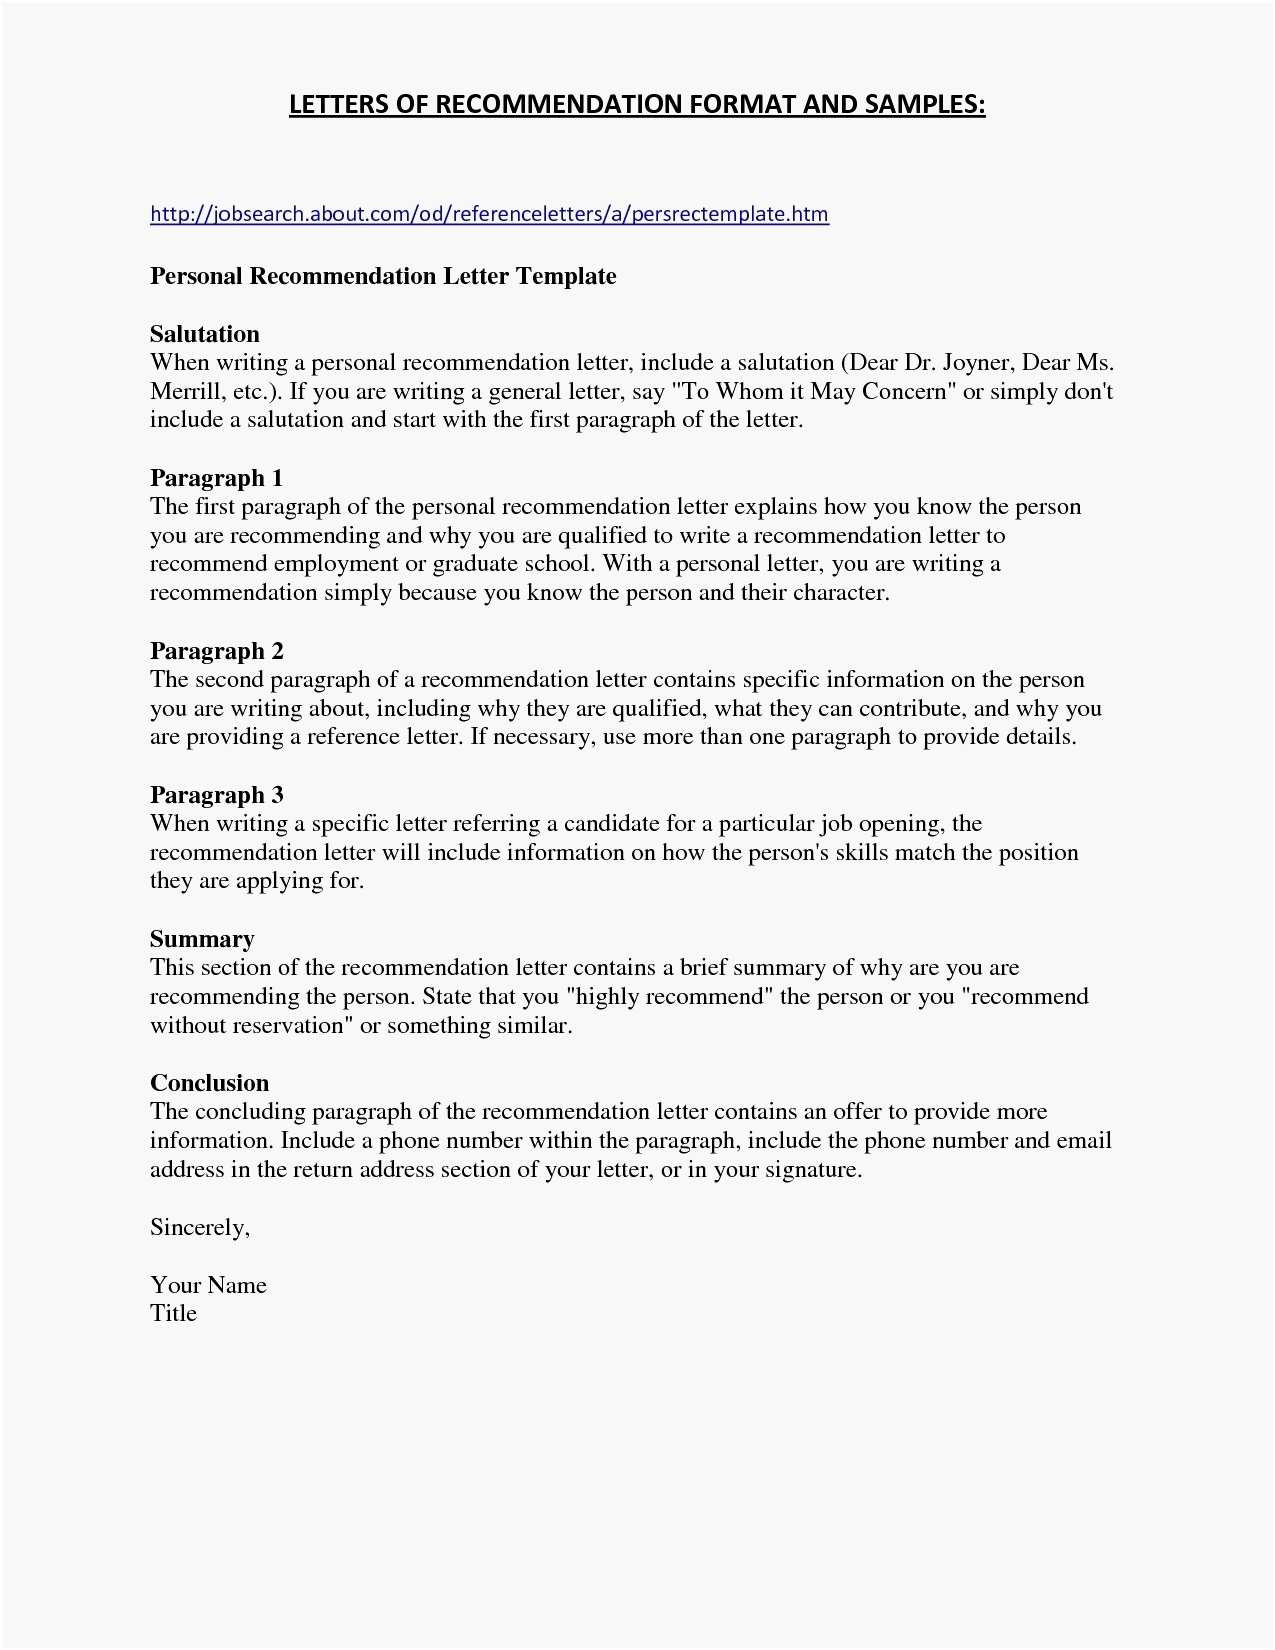 homeowners association letter templates   Hadi.palmex.co